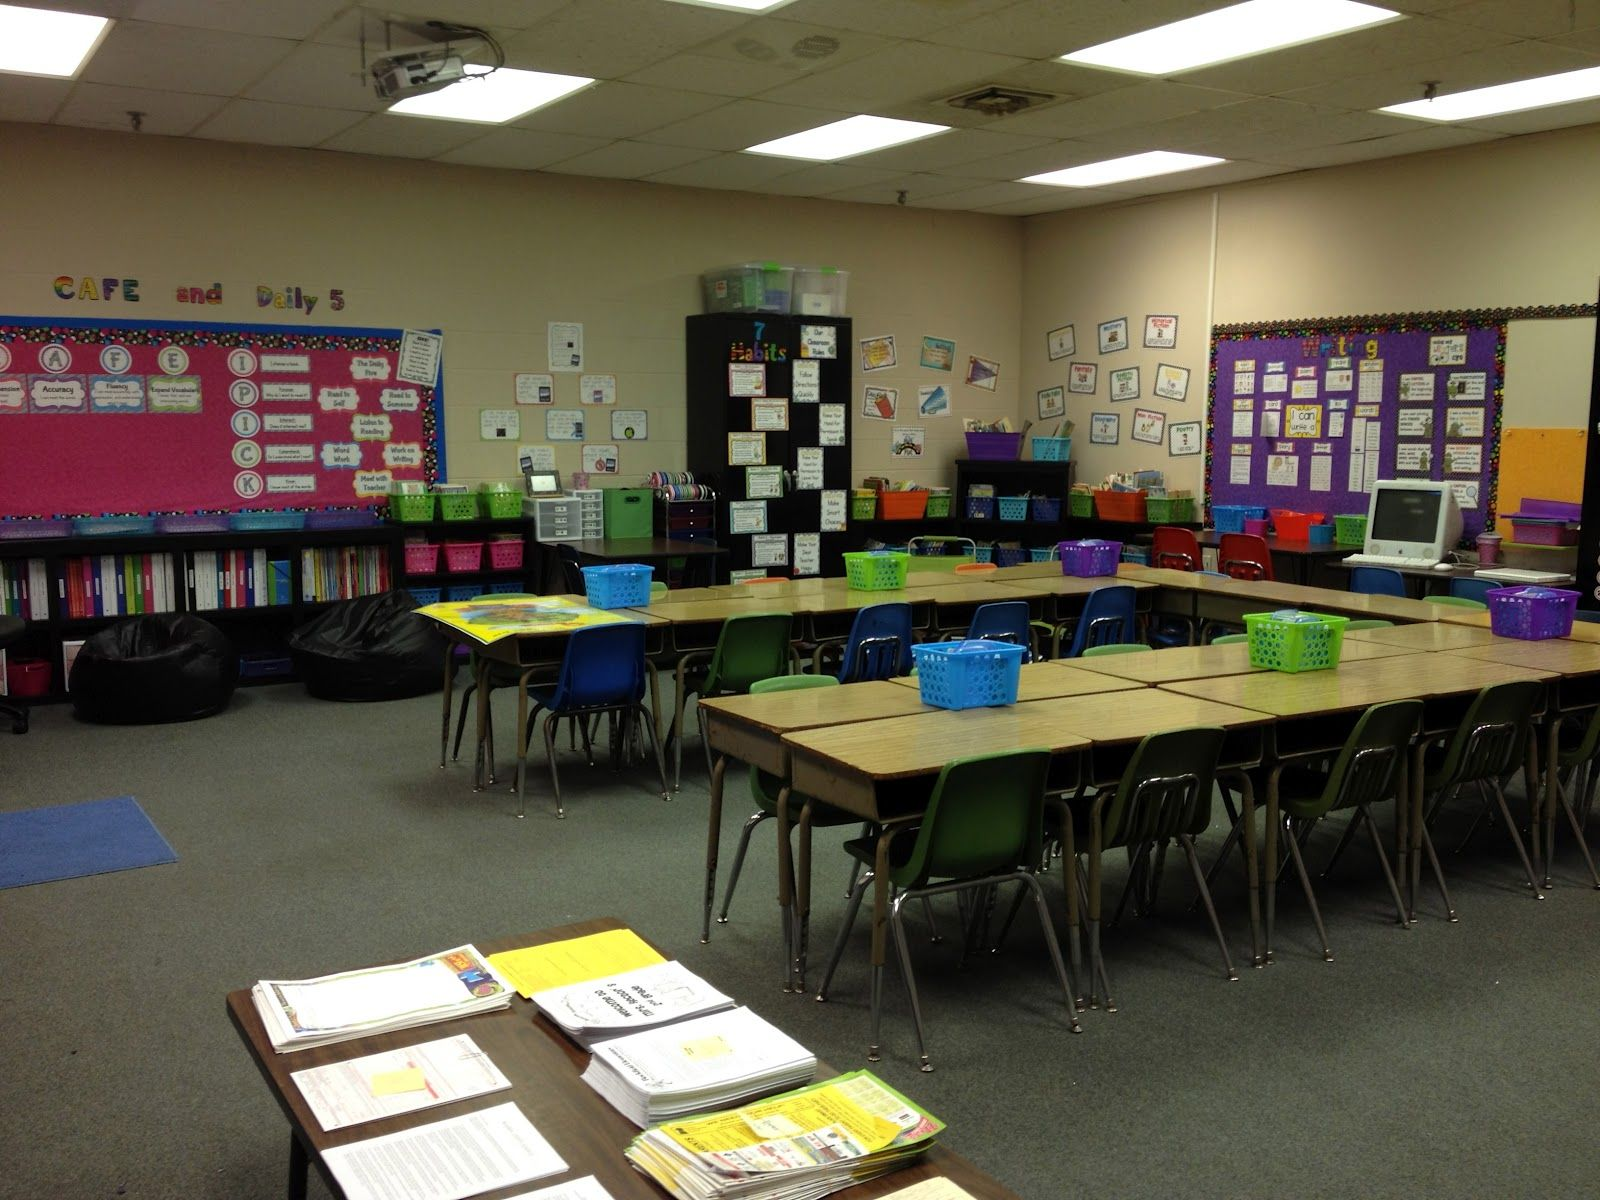 Classroom Ideas For 2nd Grade ~ Very neat classroom setup nd grade stuff take a tour of